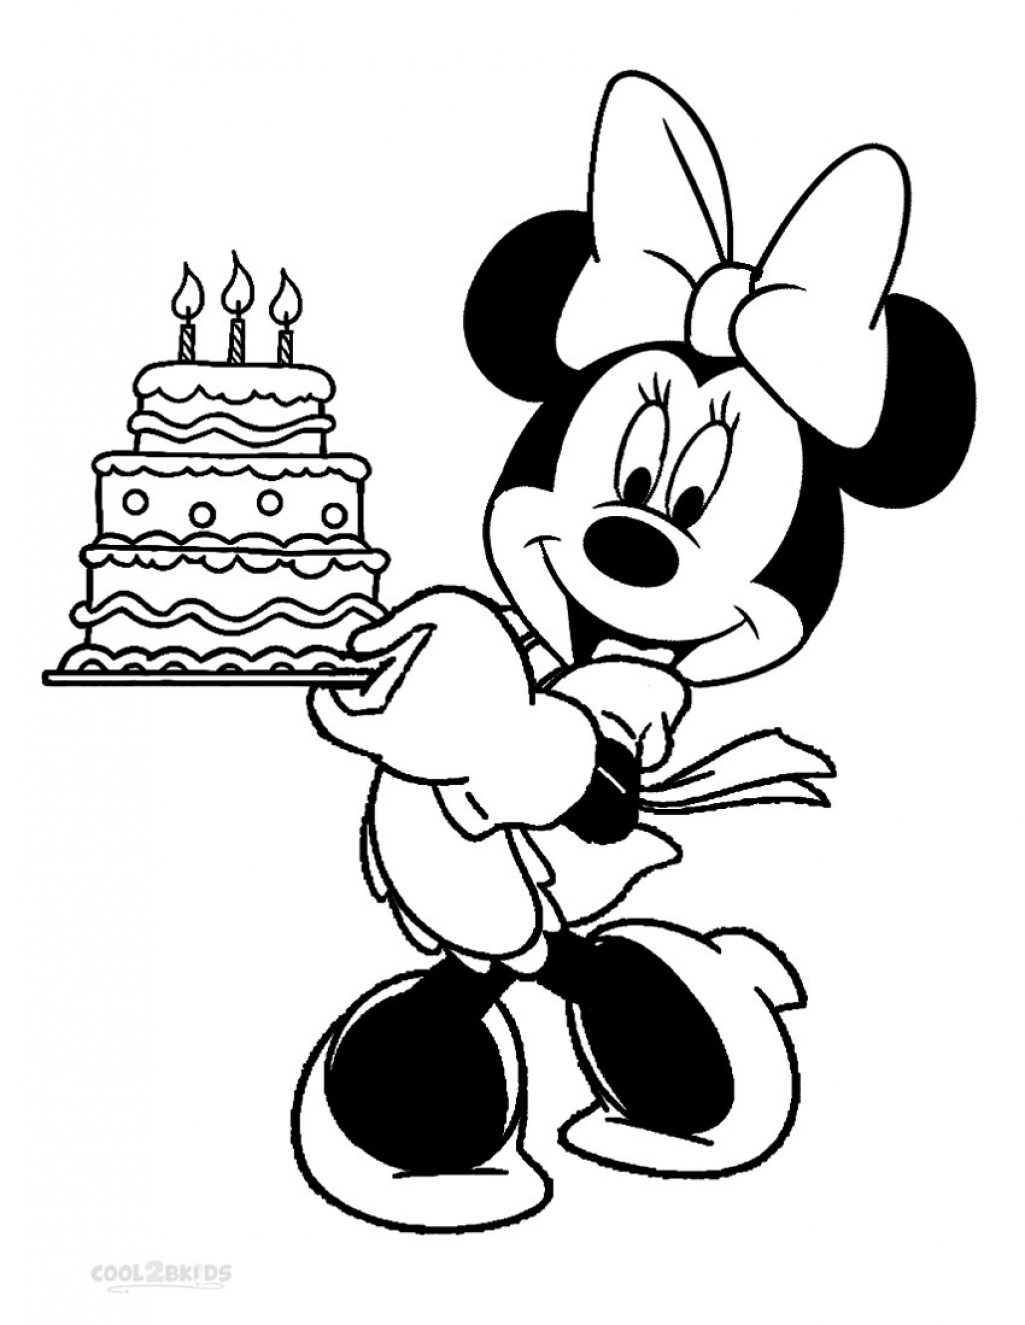 minnie mouse coloring pages birthday minnie mouse birthday cake coloring pages best place to pages coloring birthday mouse minnie